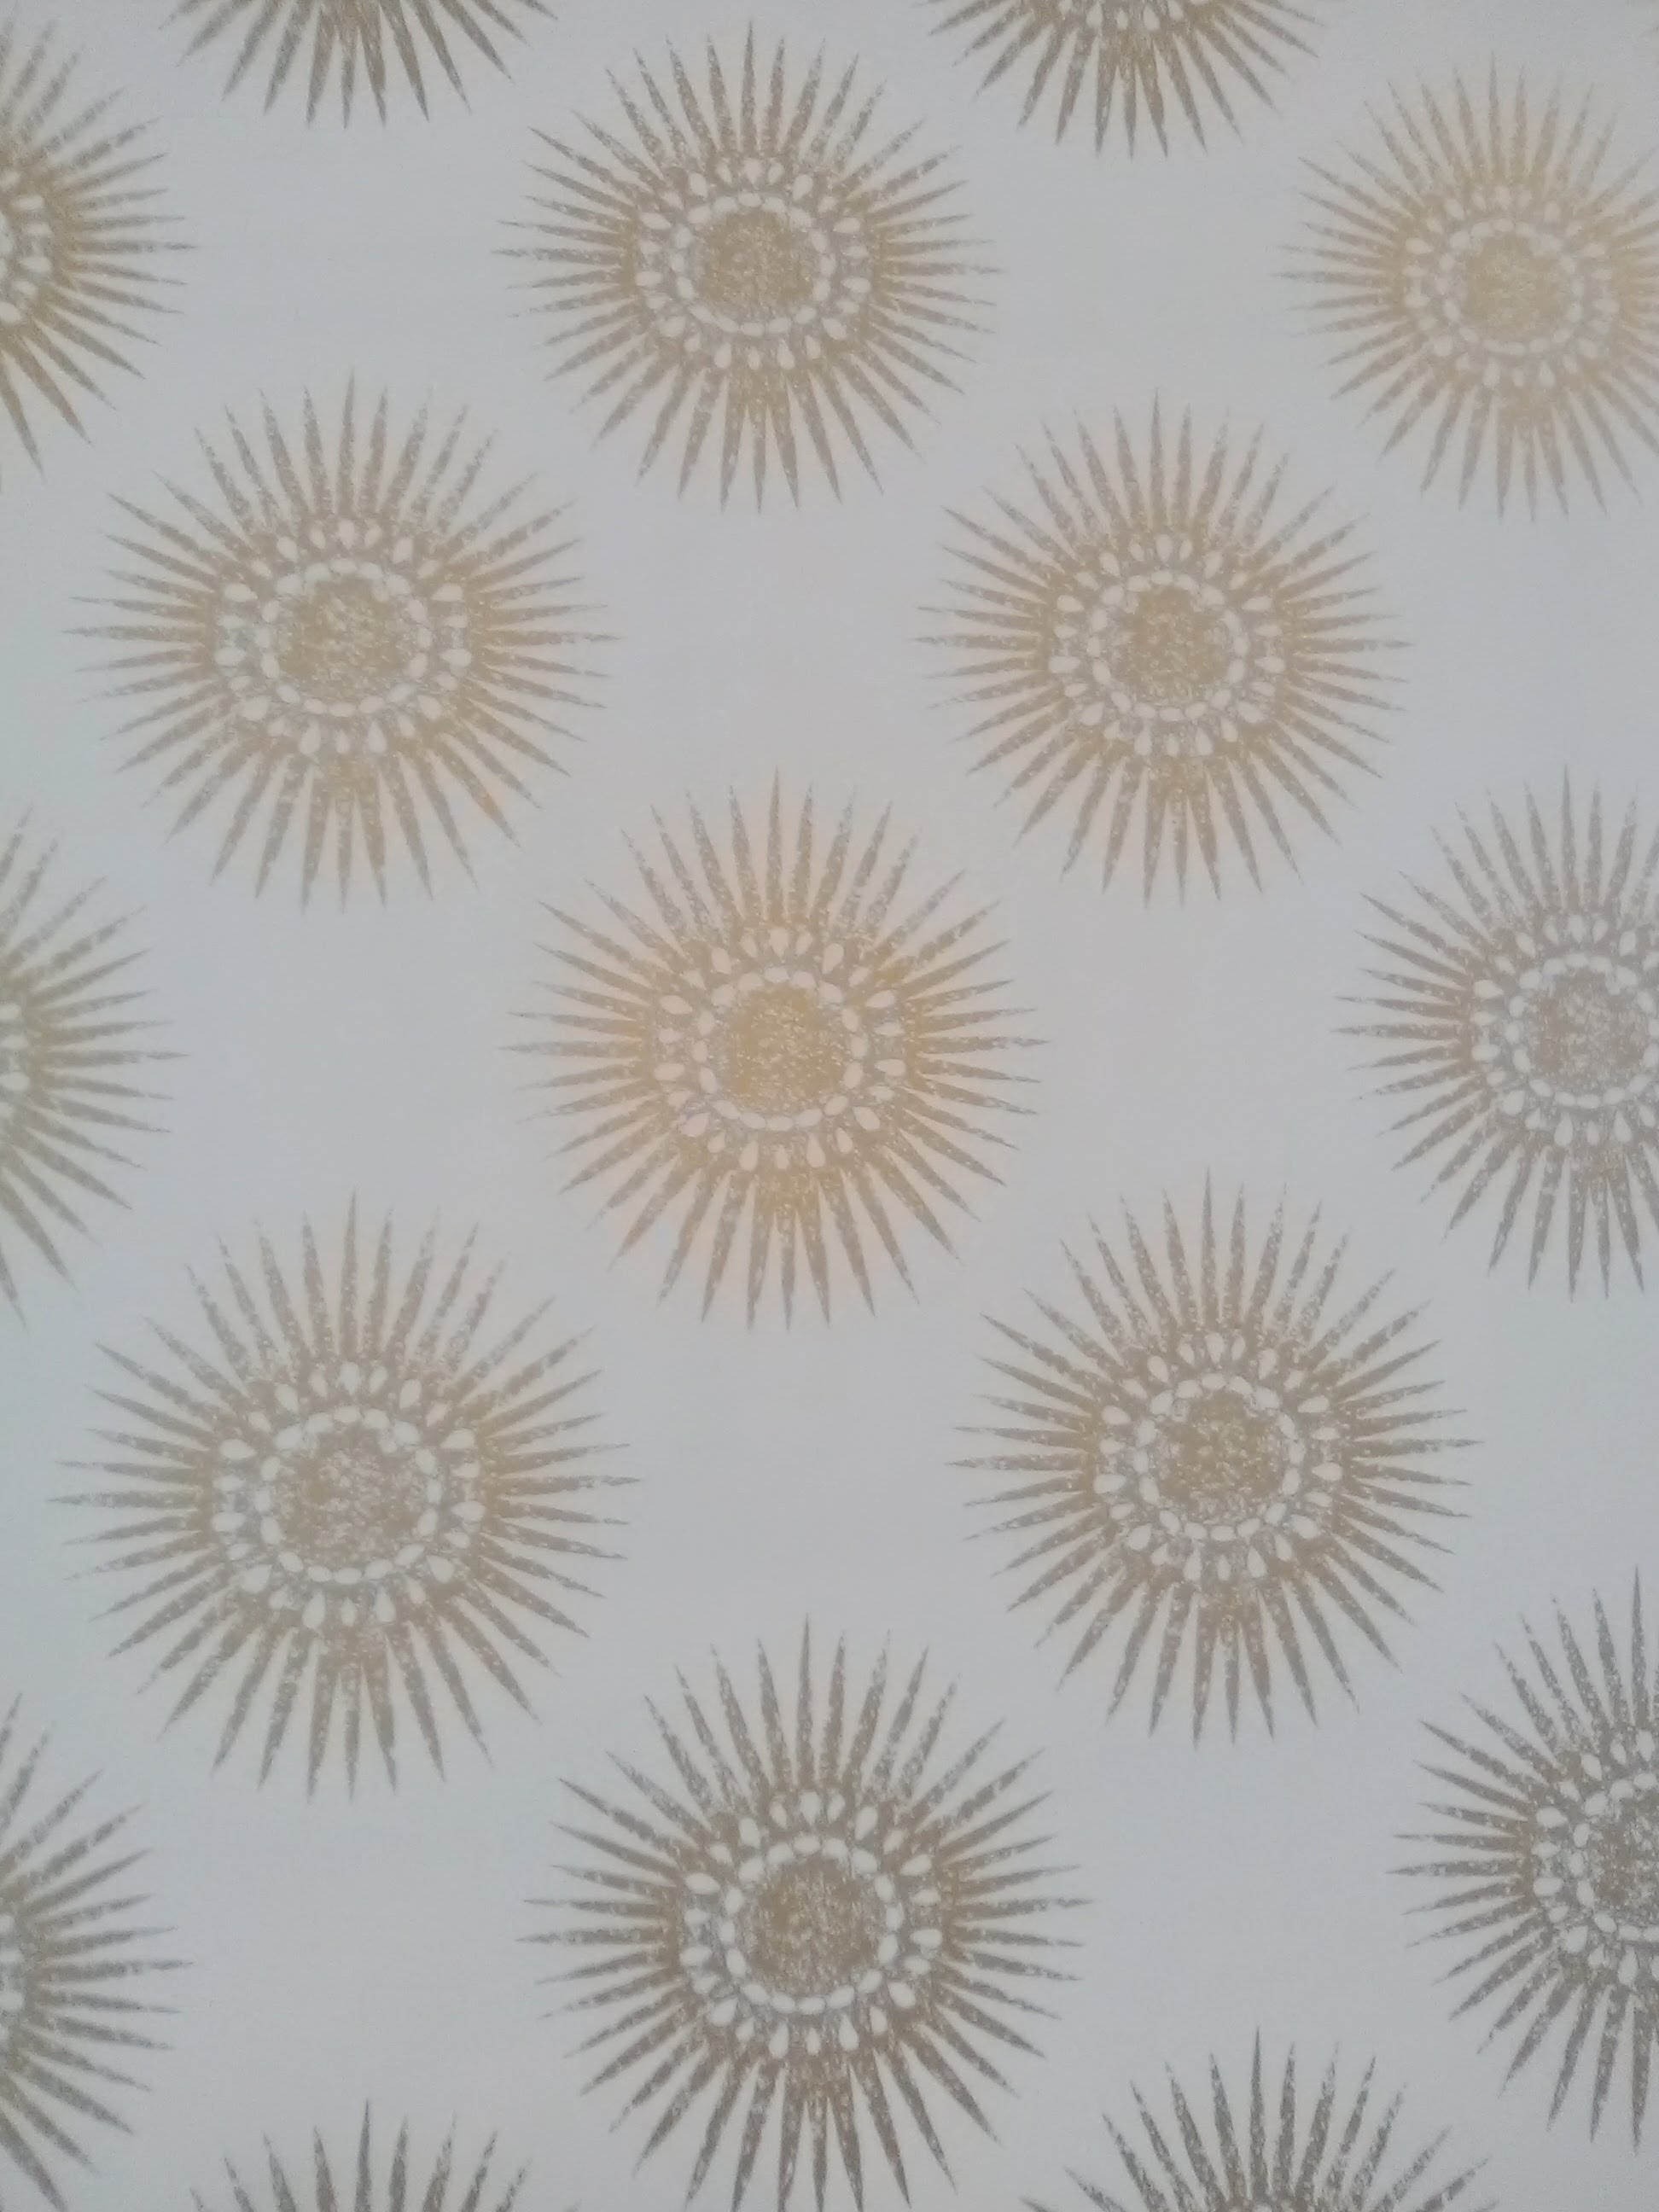 Great Wallpaper Home Screen Pattern - wallpaper-starburst-medallion-close-up  Best Photo Reference_44922.jpg